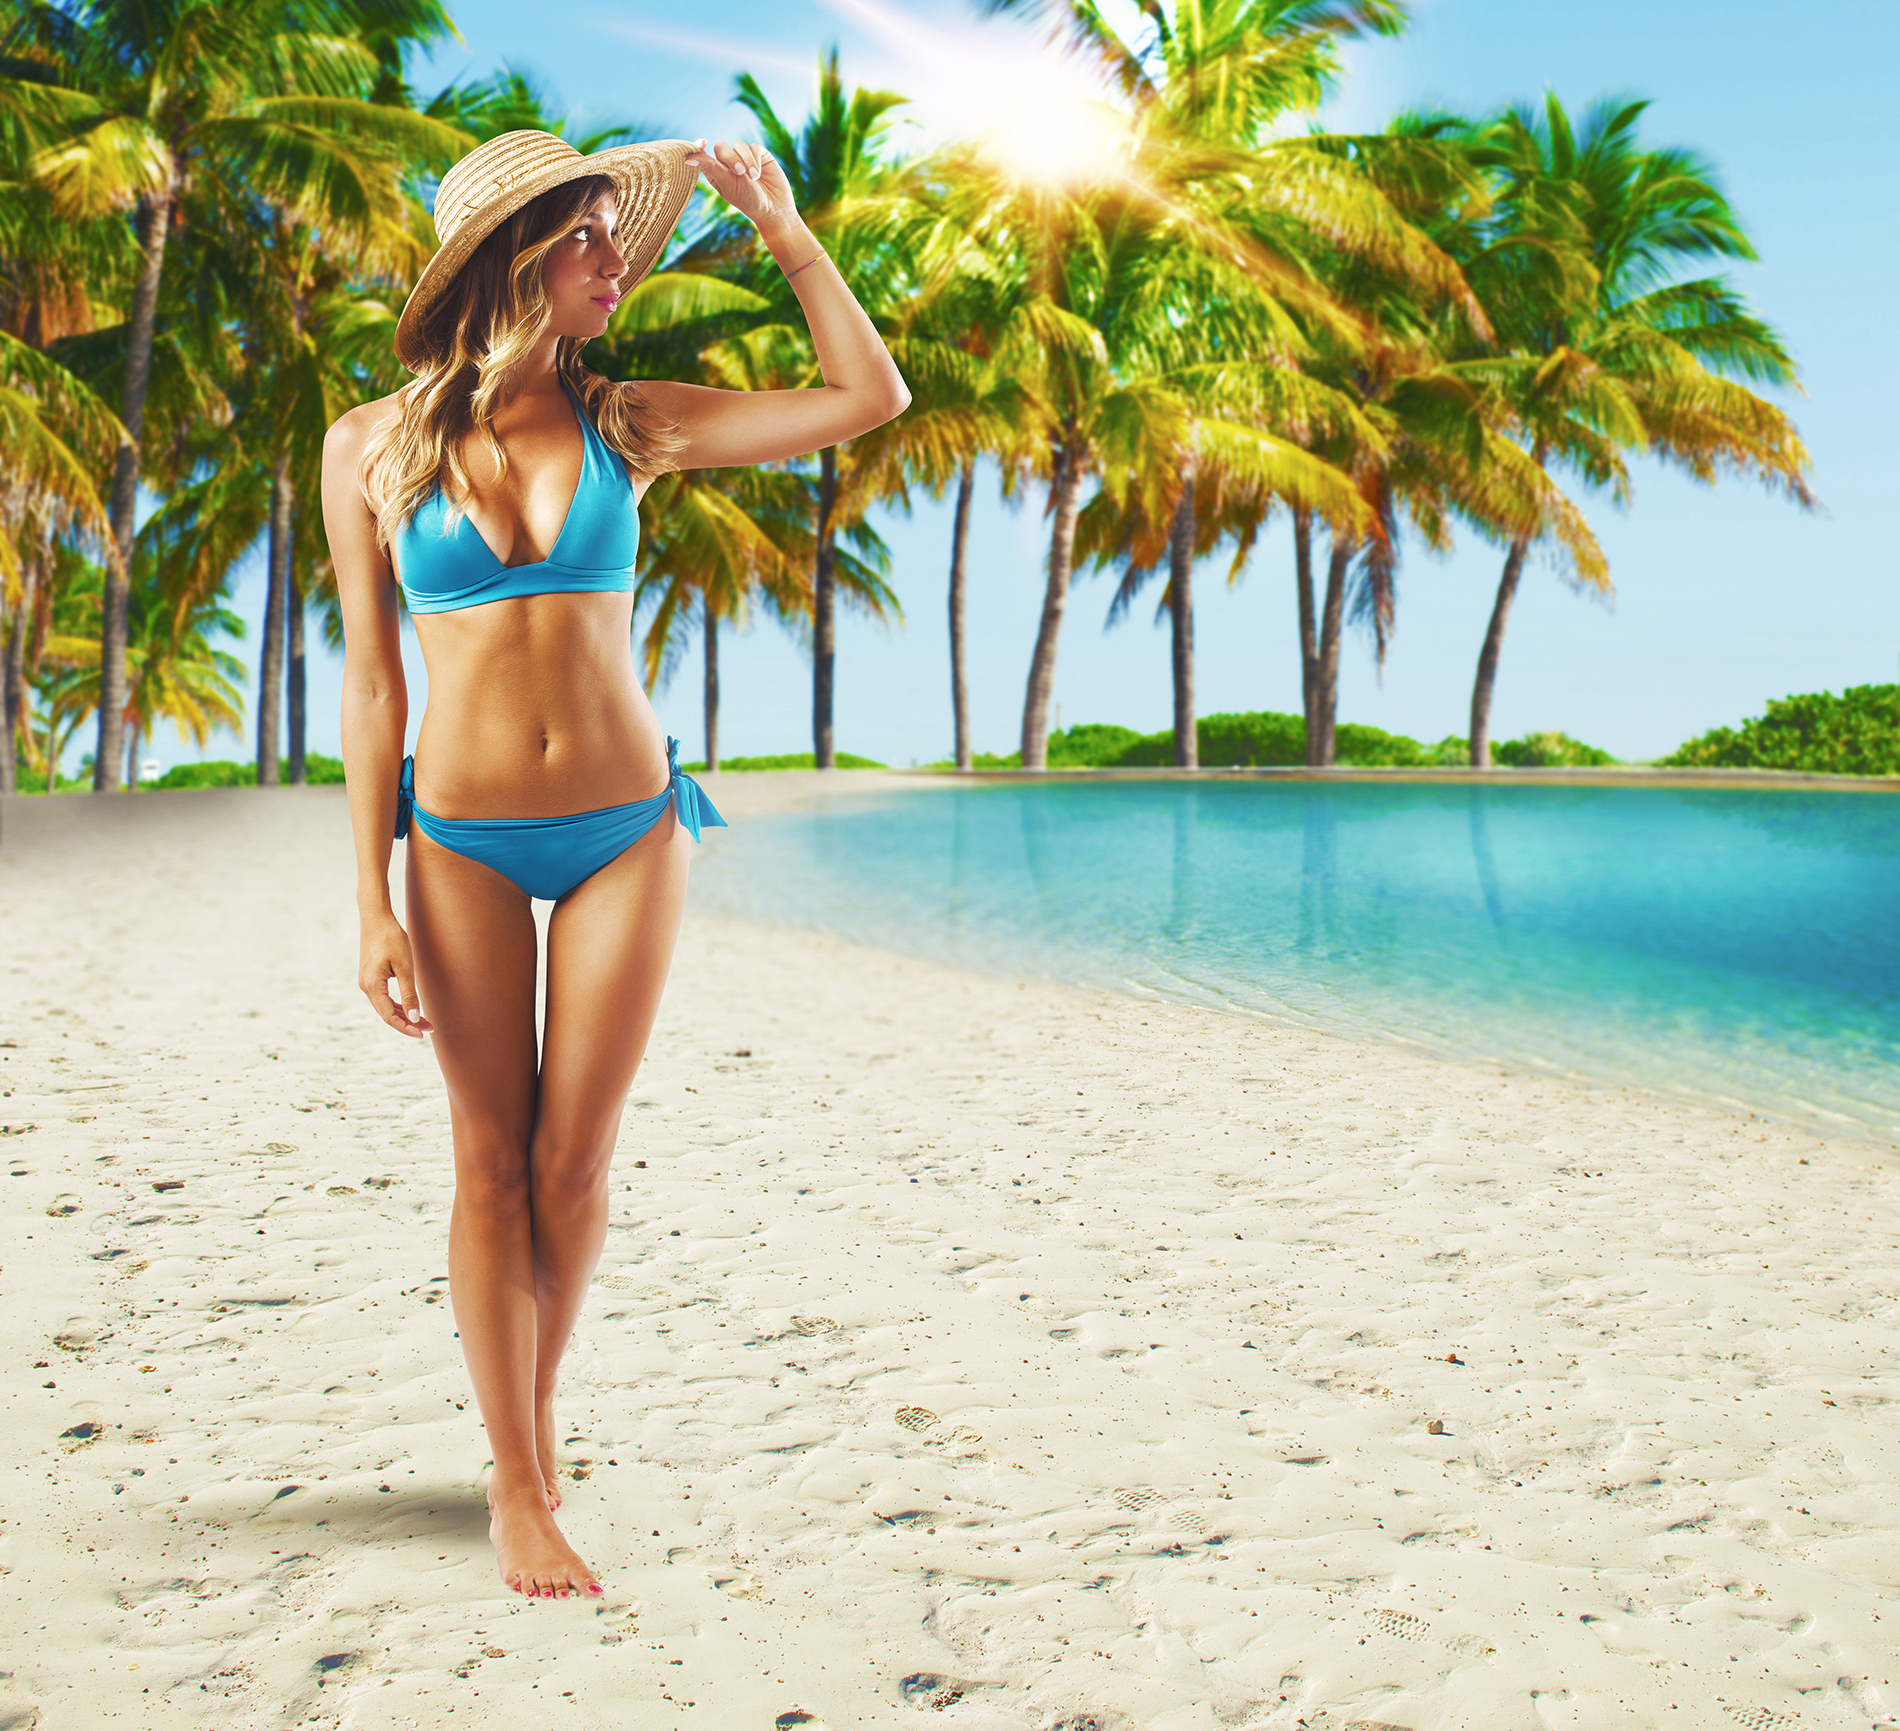 Bikini beauty and water coconut trees 53932